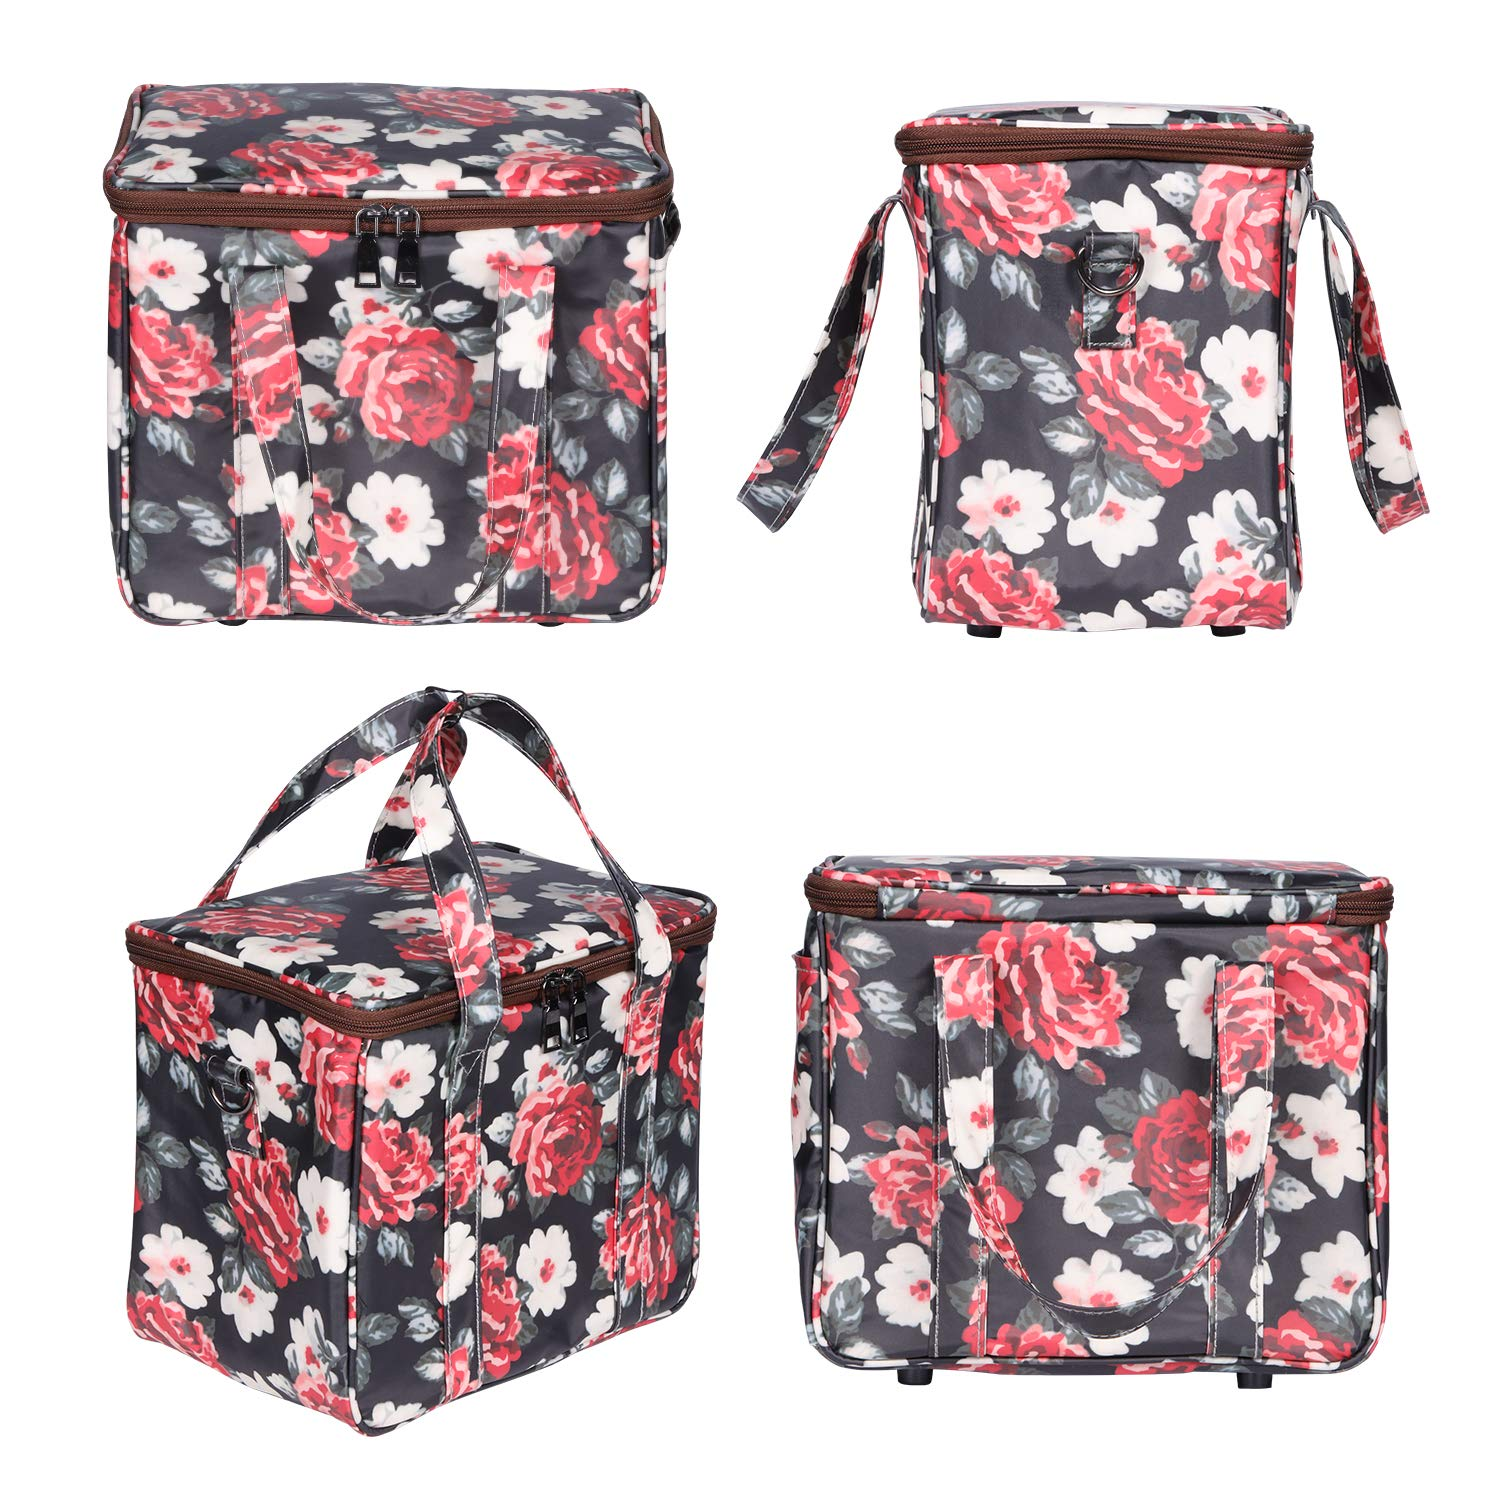 Lunch Bags for Women,Kwartz Insulated Lunch Box Large Capacity Cooler Tote Bag Thermal Leak Proof Liner Lunch Organizer for Women Picnic Hiking Beach Working